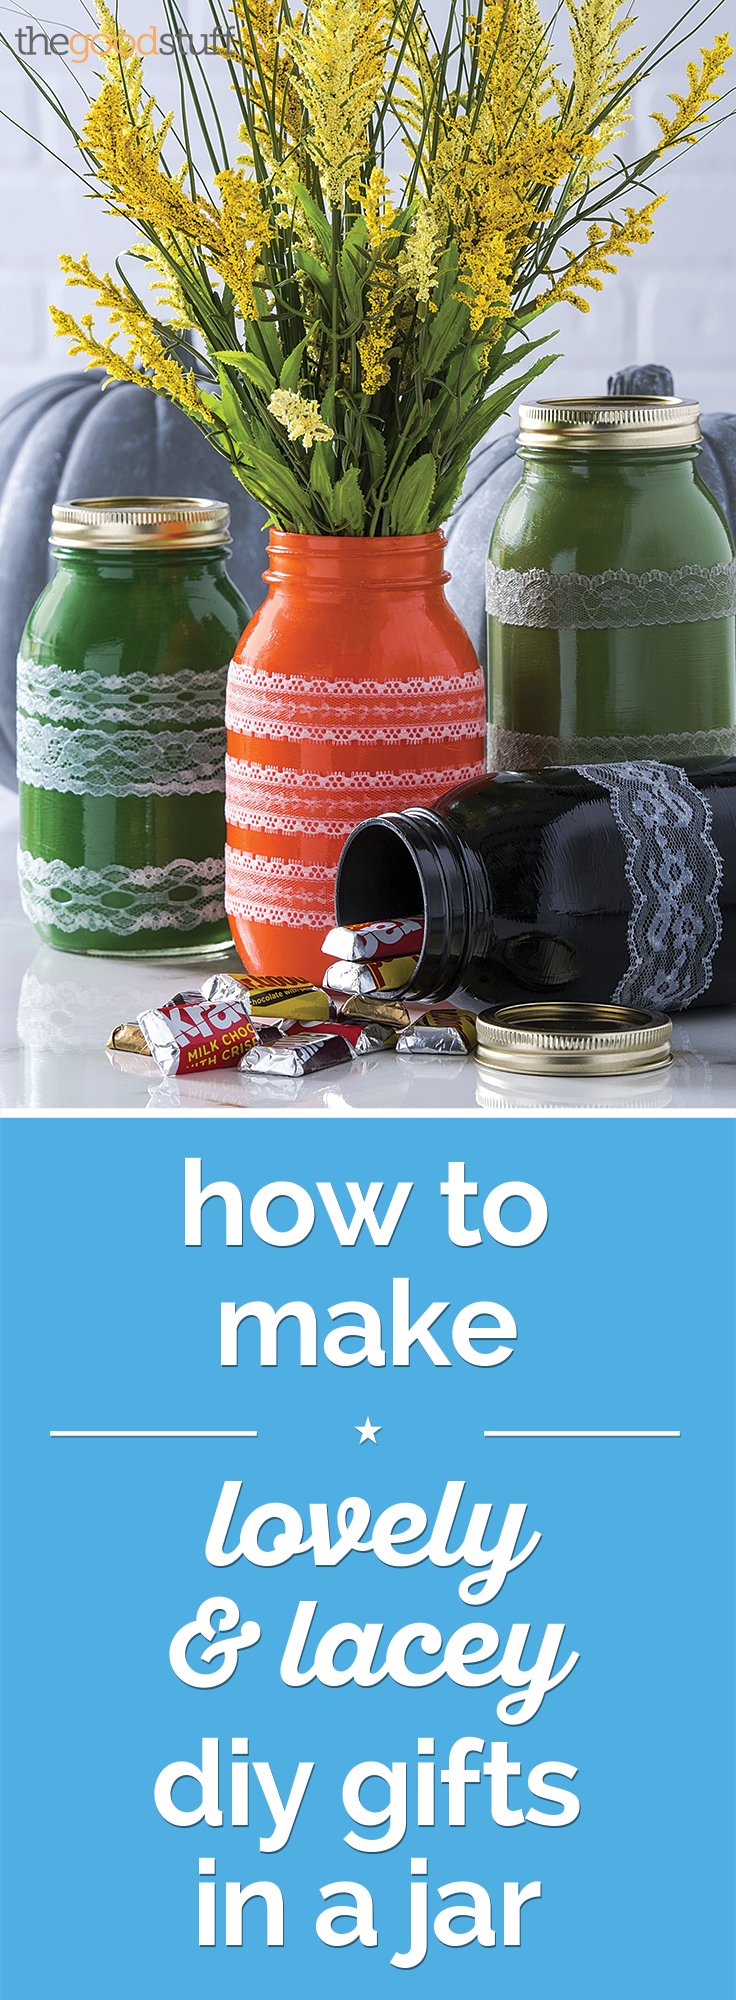 How to Make Lovely & Lacey DIY Gifts In a Jar | thegoodstuff